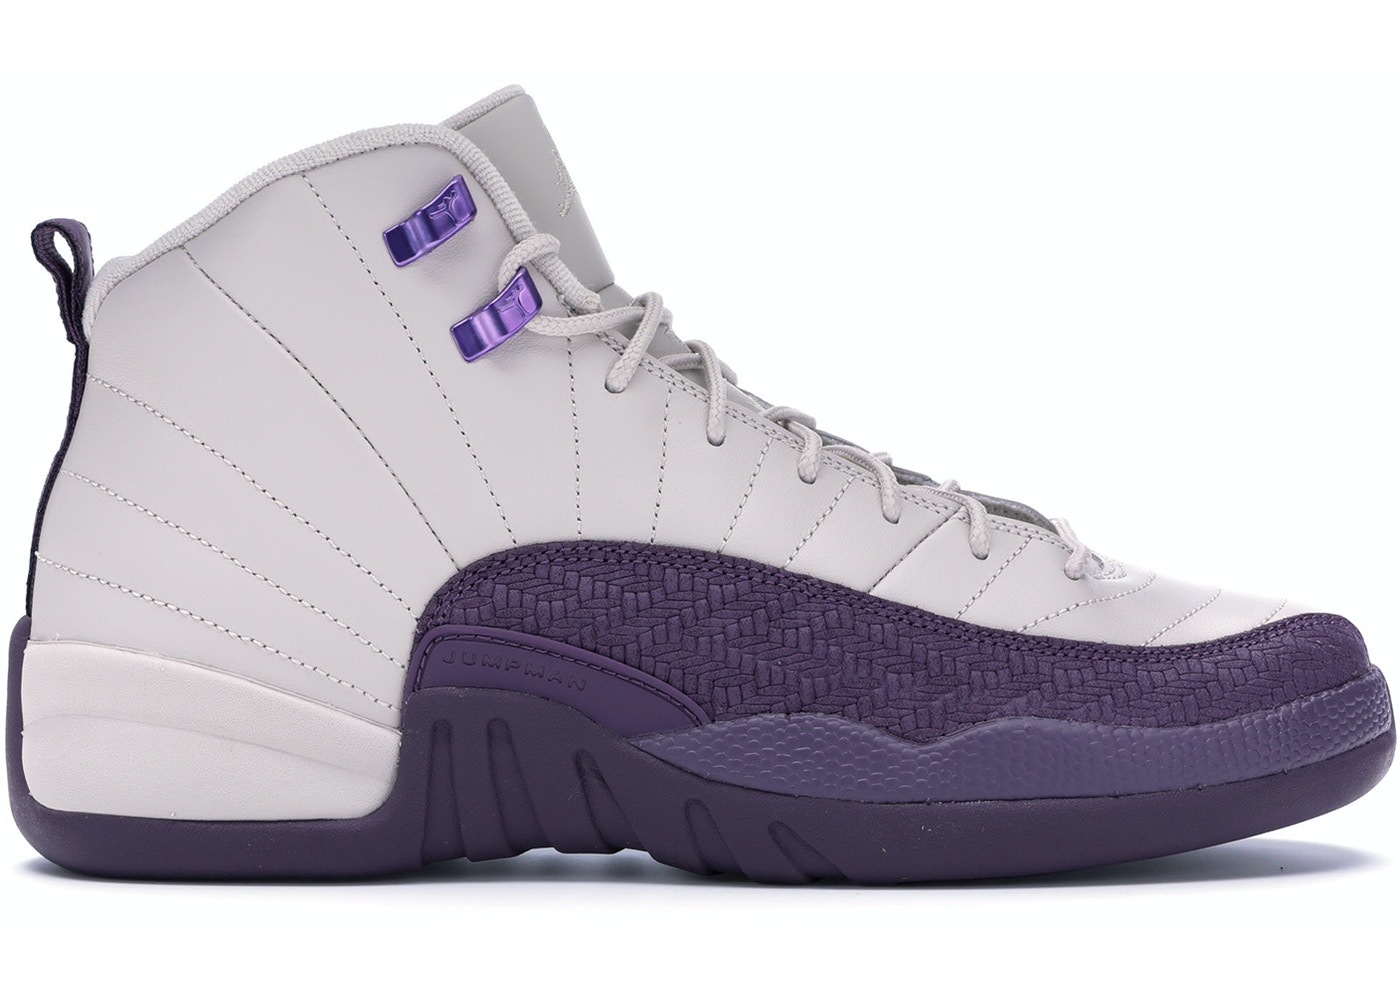 cheap for discount 49131 8f11a Buy Air Jordan 12 Shoes   Deadstock Sneakers